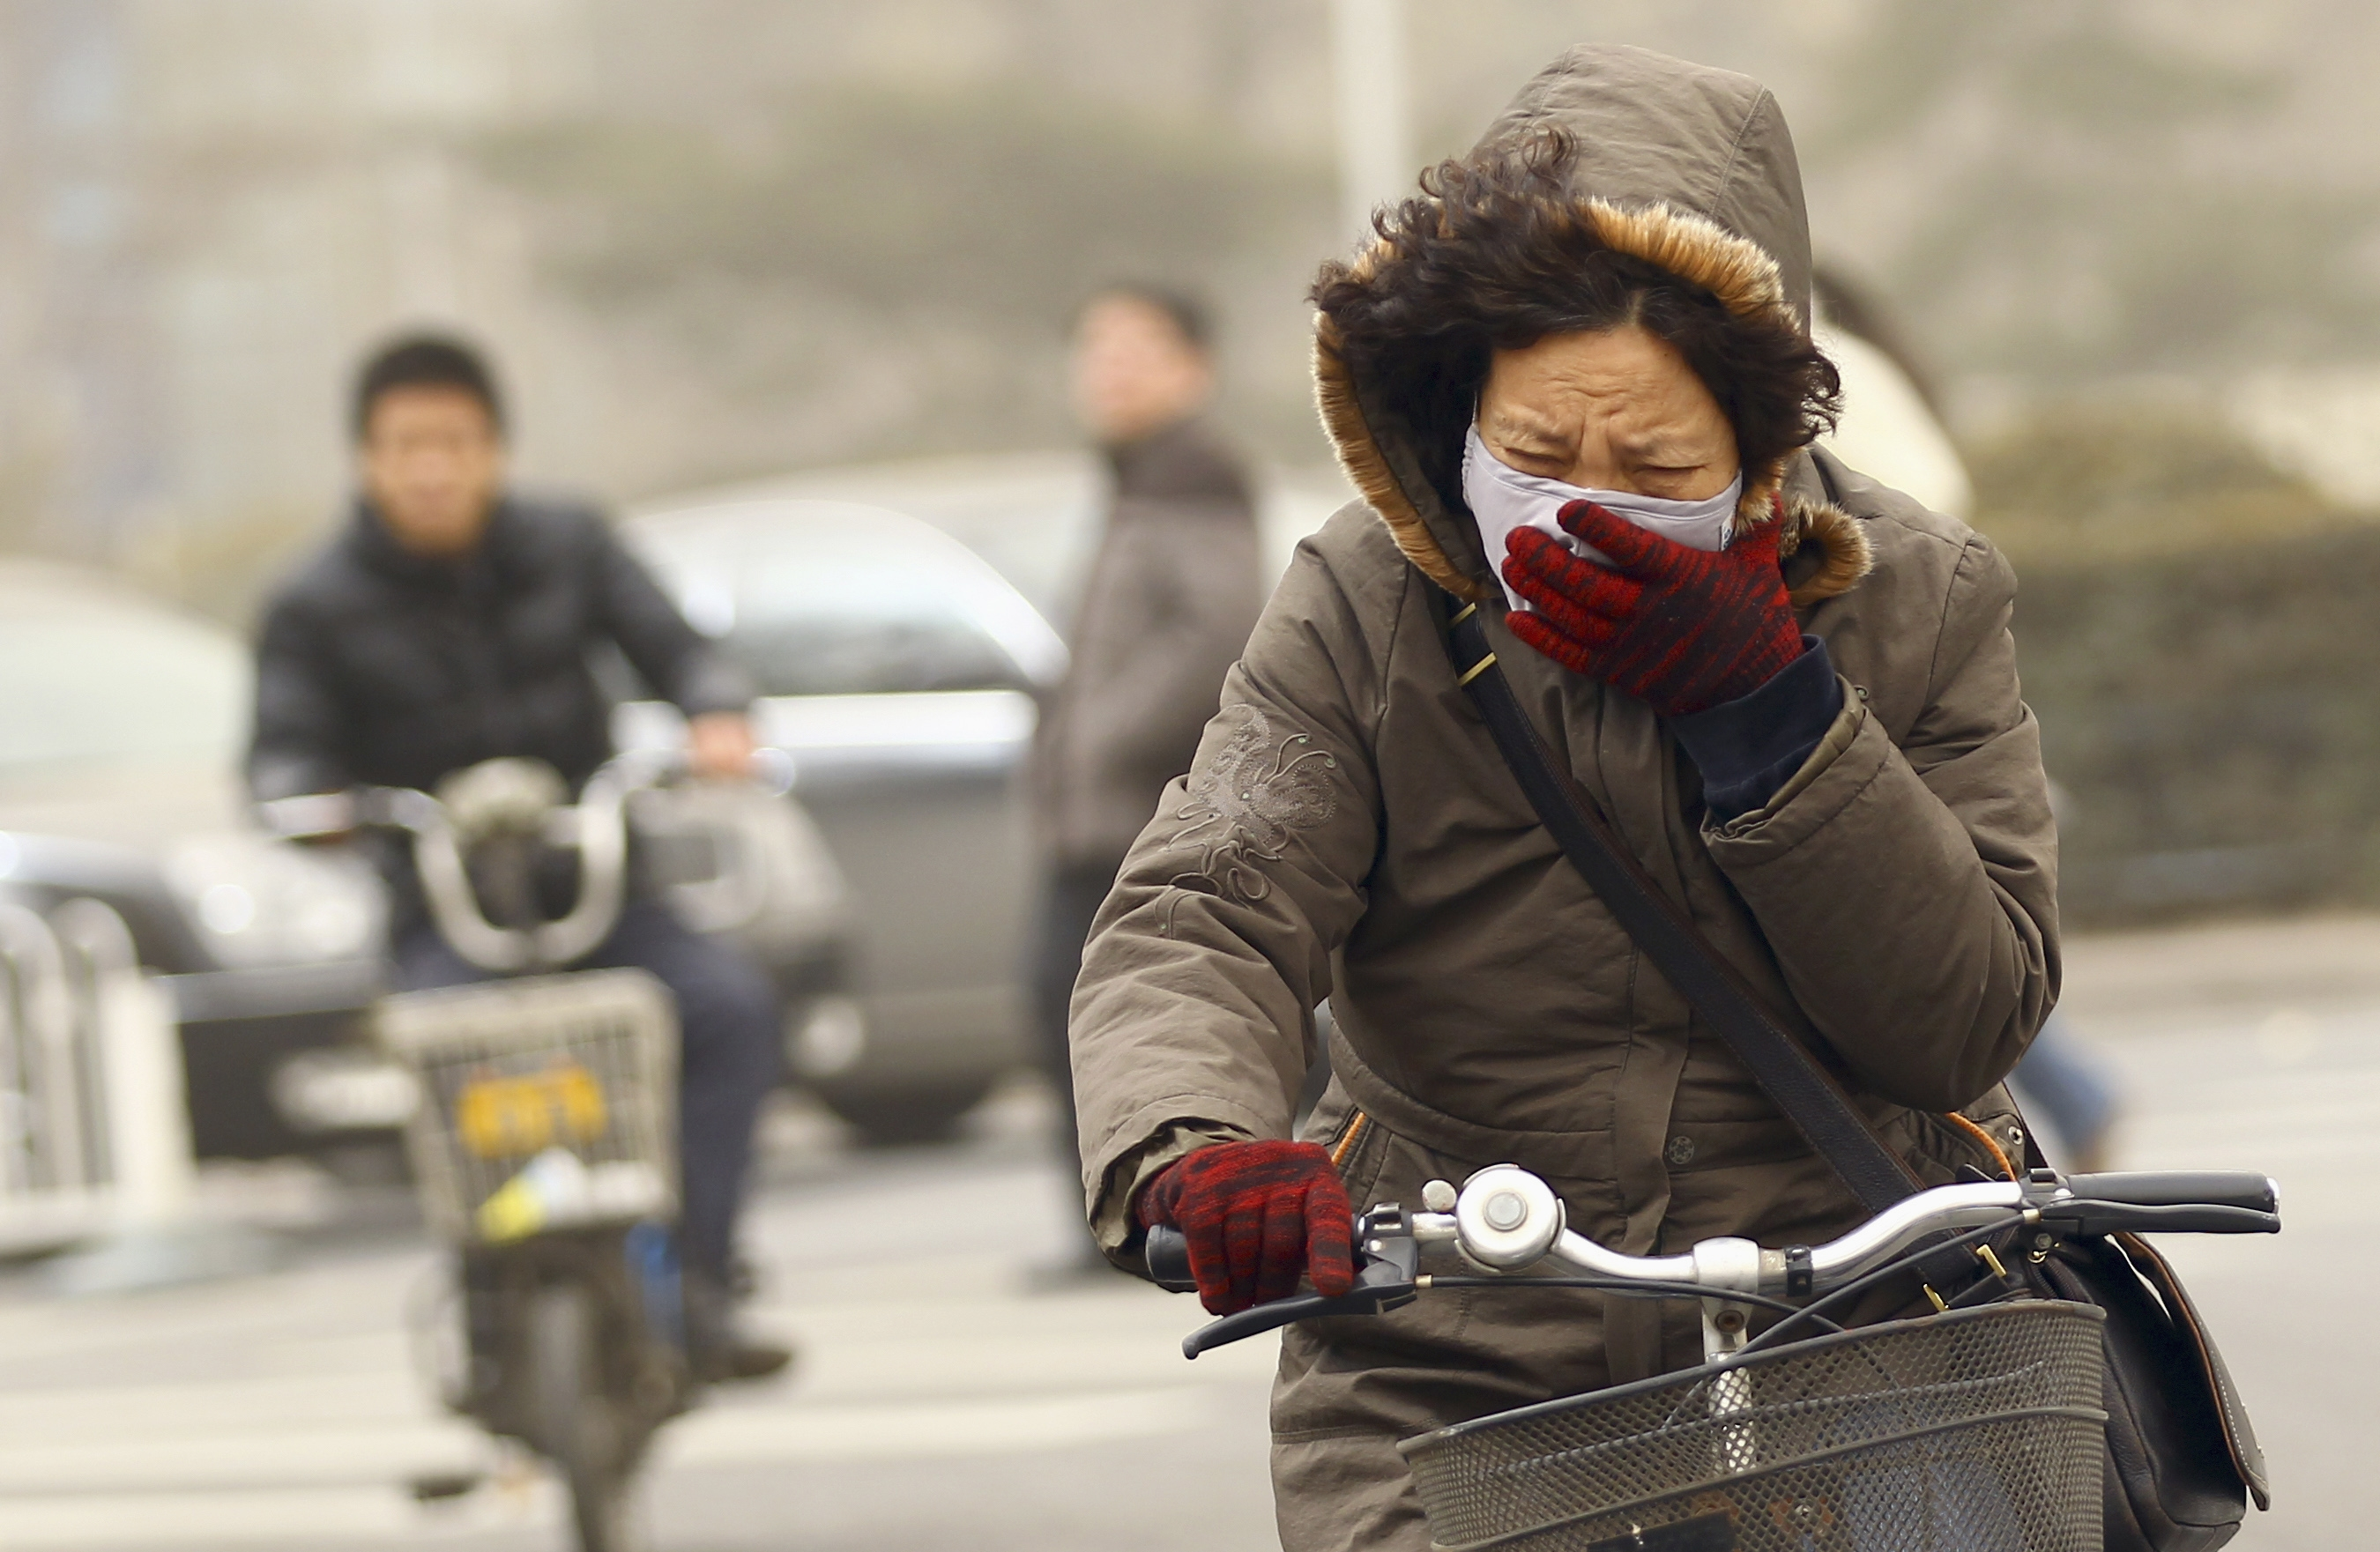 air pollution in china Pollution in china can change weather patterns in the united states it takes just five days for the jet stream to carry heavy air pollution from china to the united states, where it stops clouds.